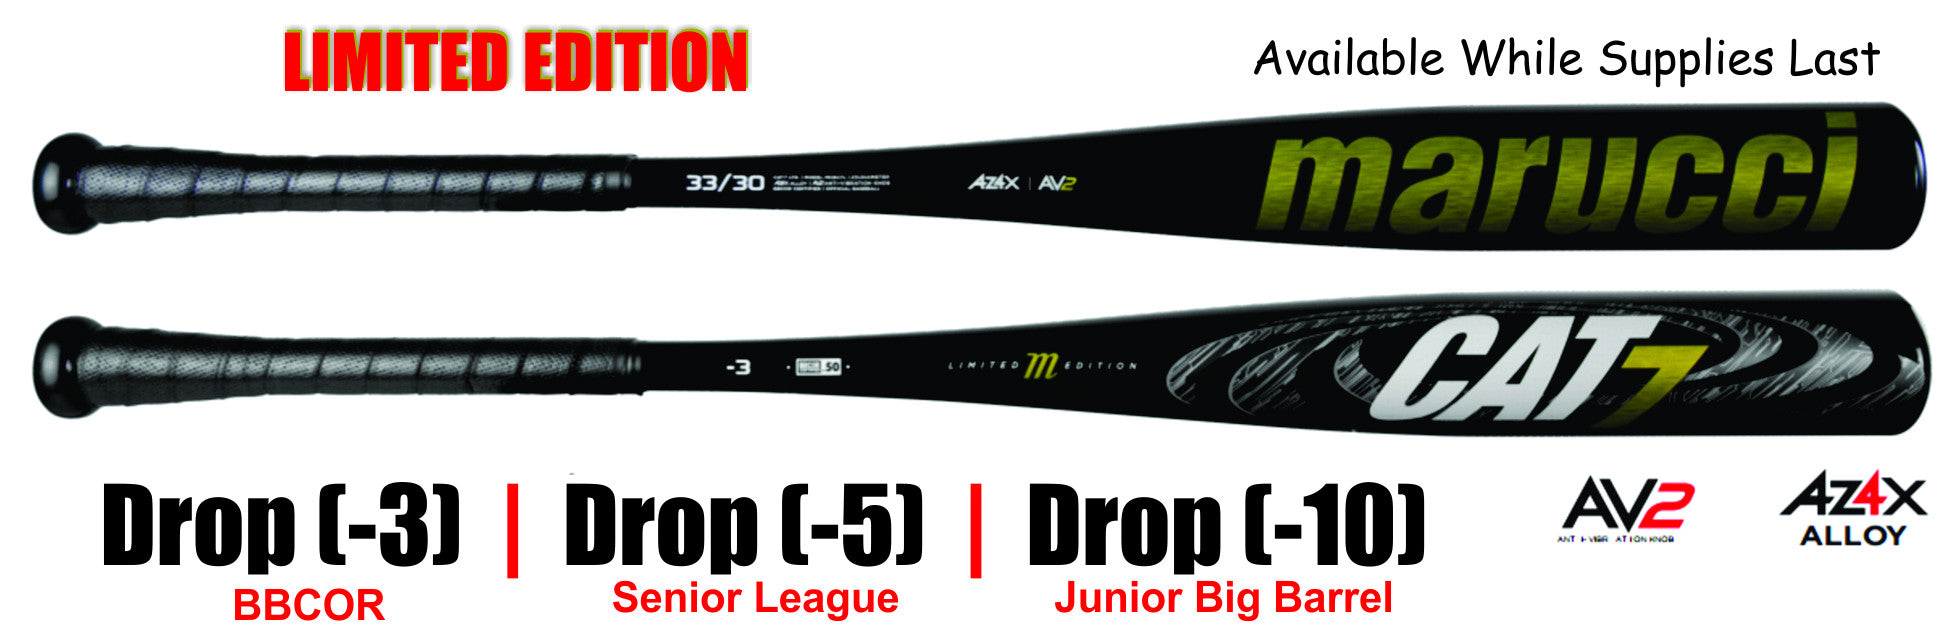 Marucci CAT7 Limited Edition